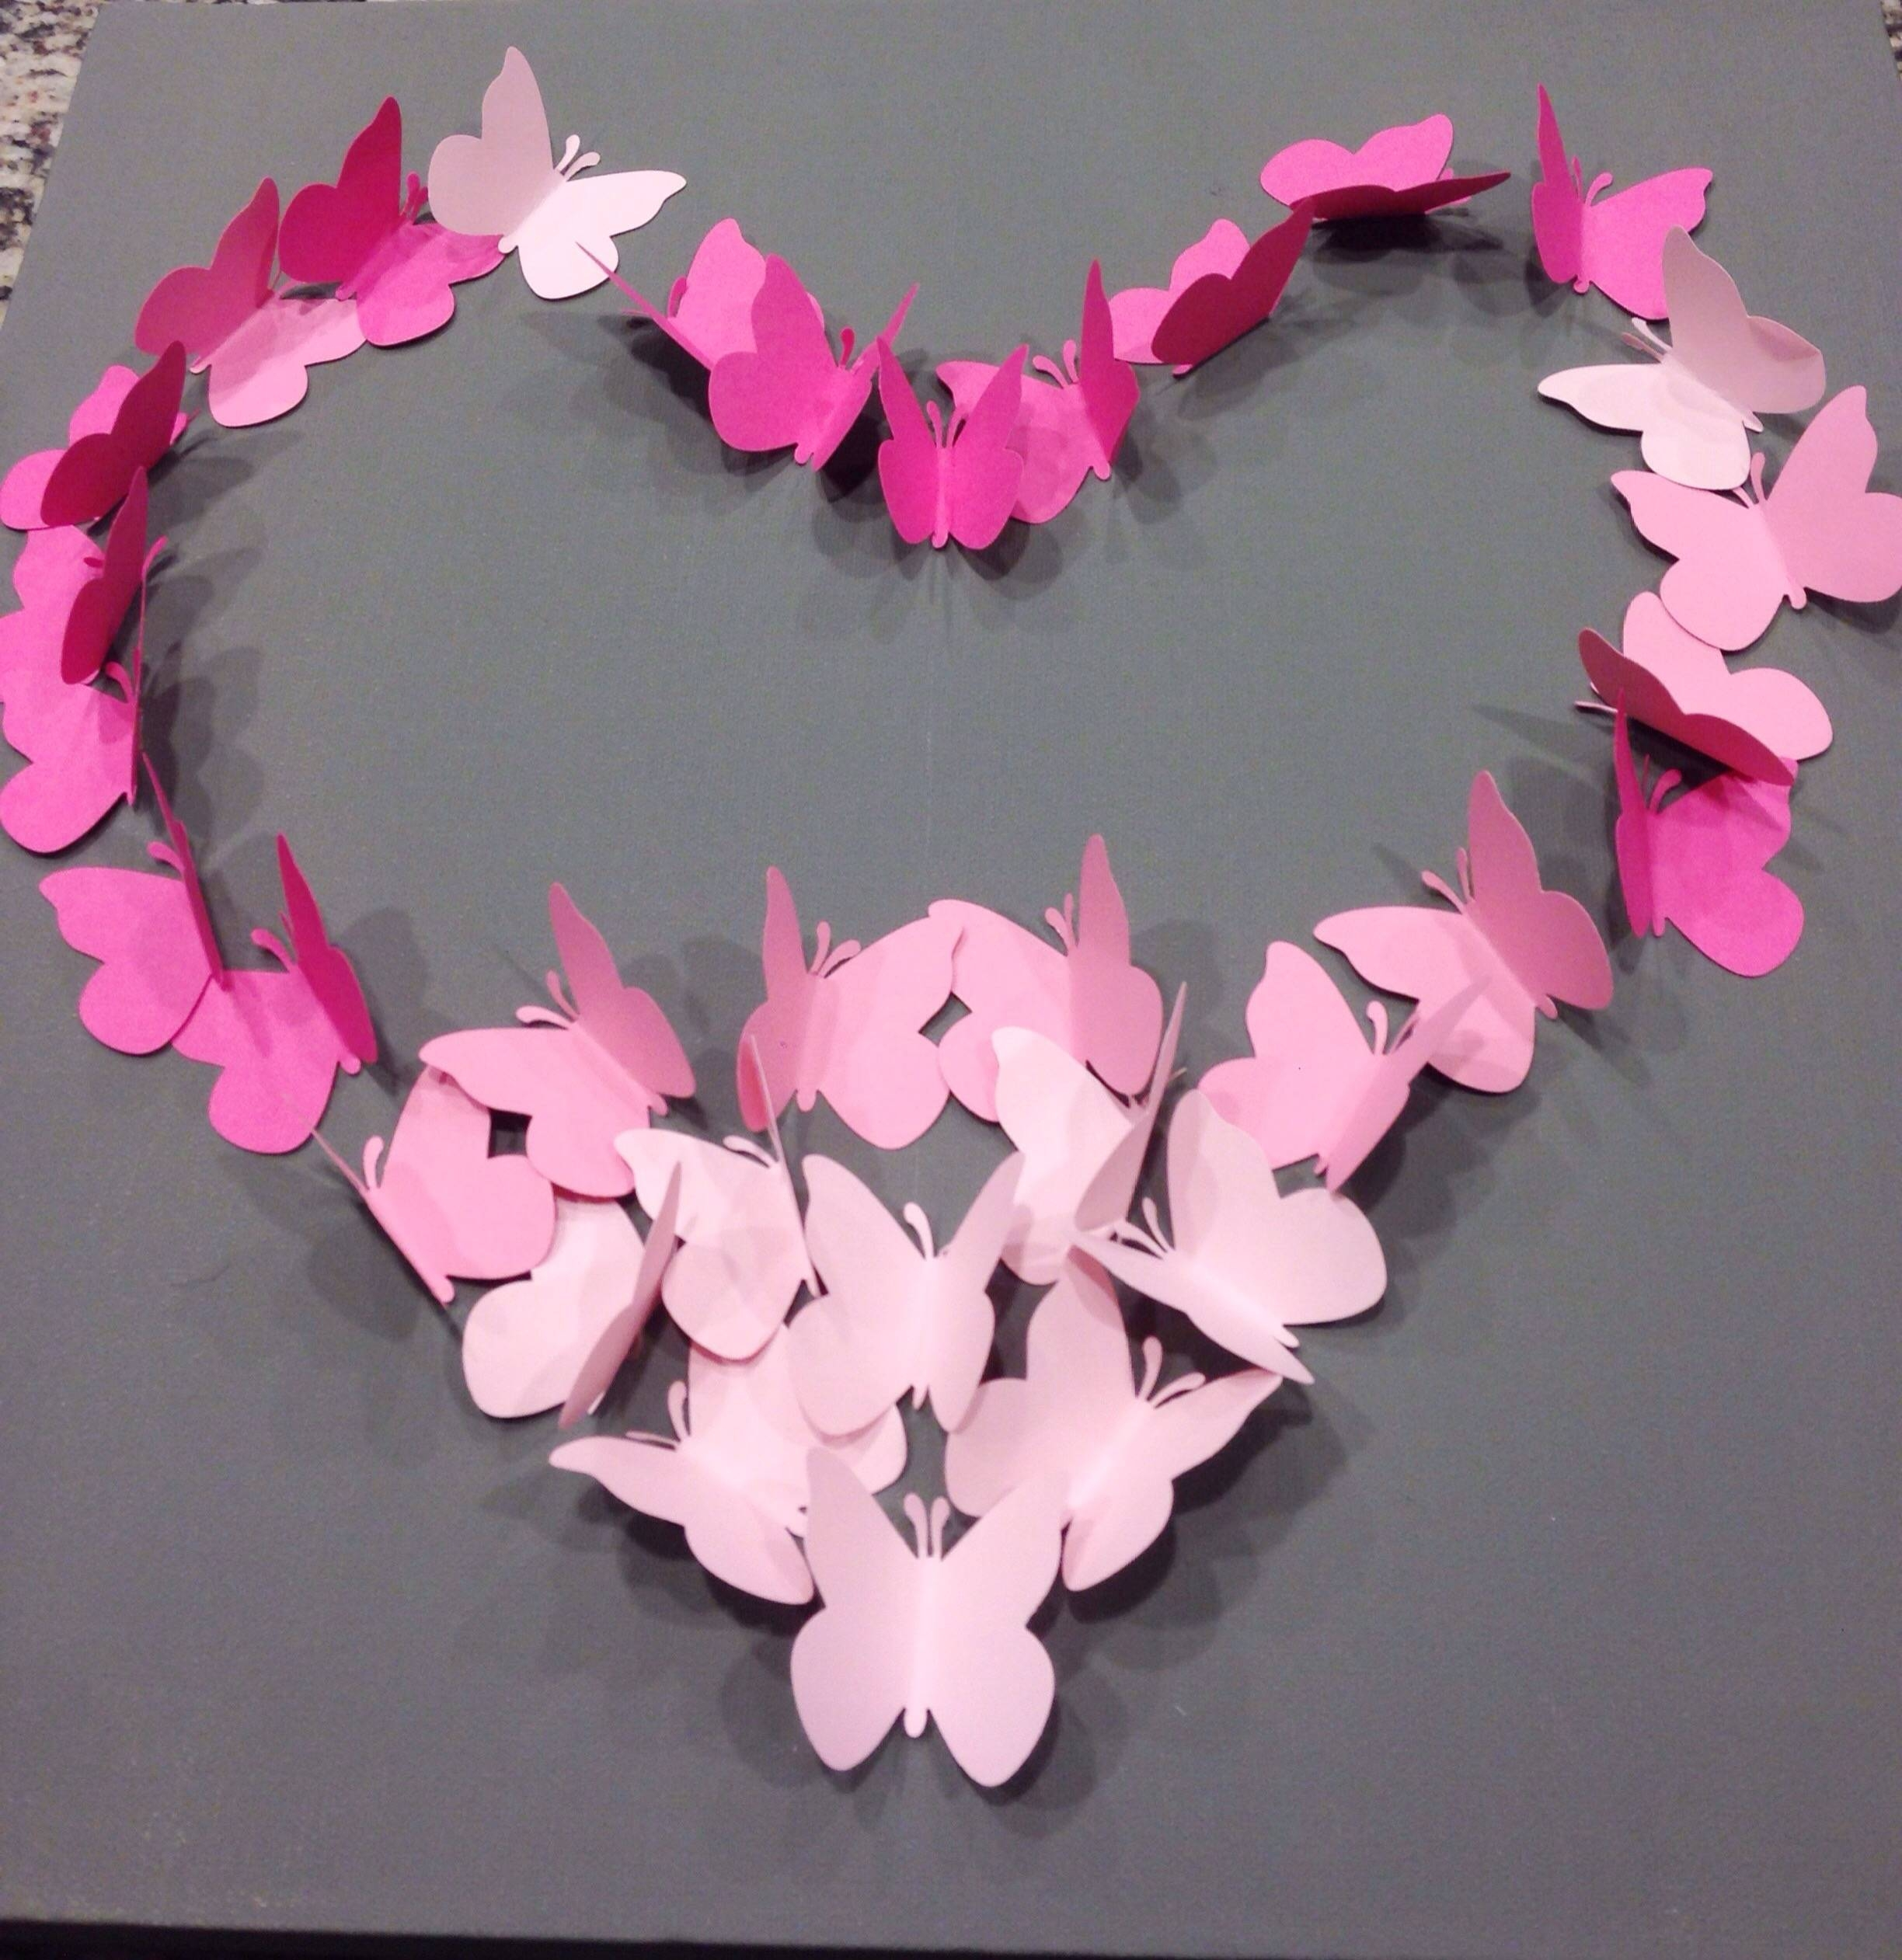 Diy Ombre Butterfly Wall Art Within Most Current Pink Butterfly Wall Art (View 10 of 20)